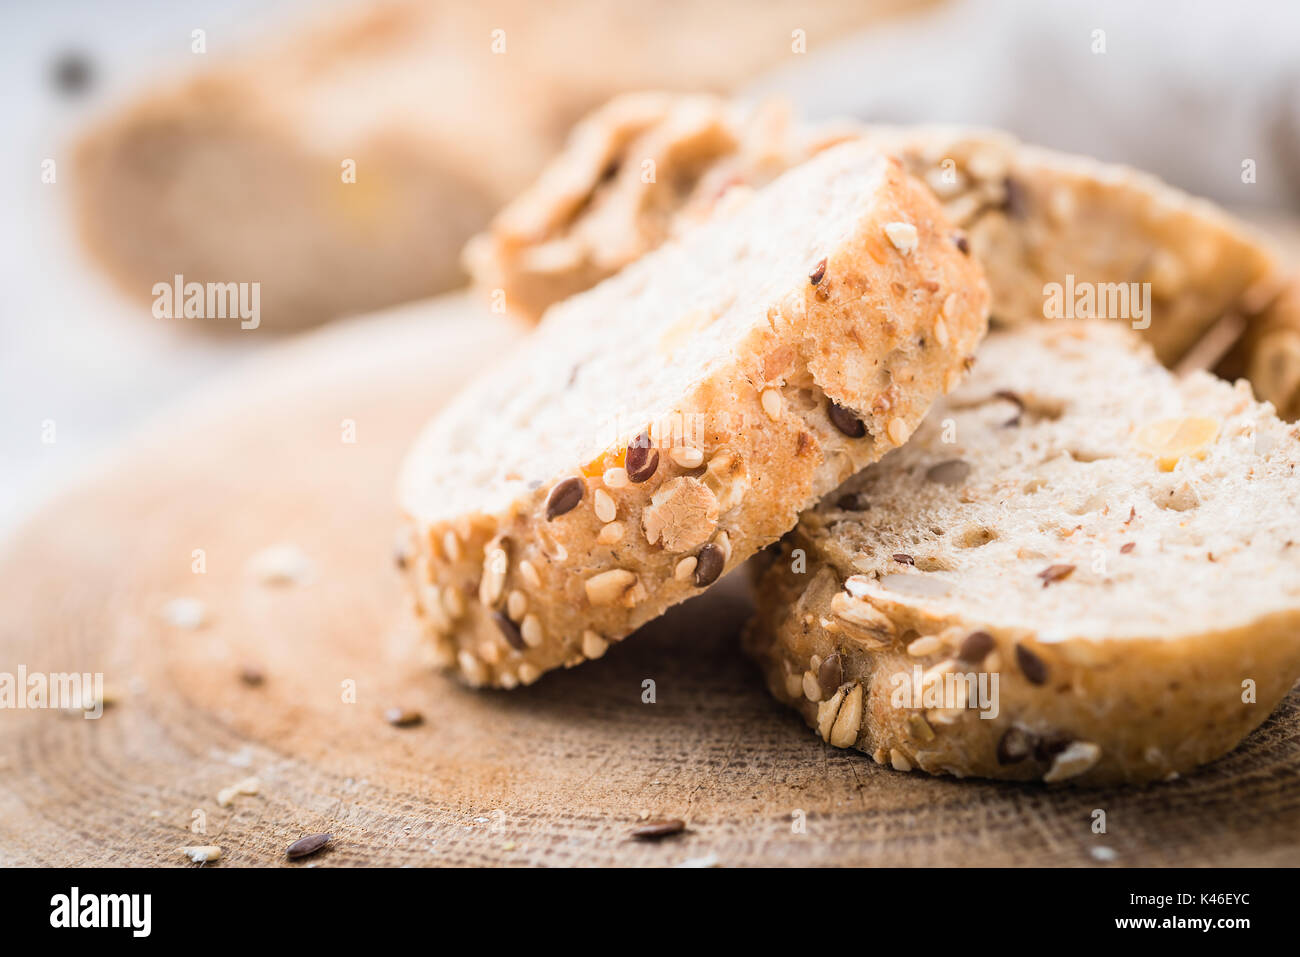 Fresh, healthy whole grain rye baguette and slices on cloth and rustic wooden board, close up. Bakery and grocery concept - Stock Image